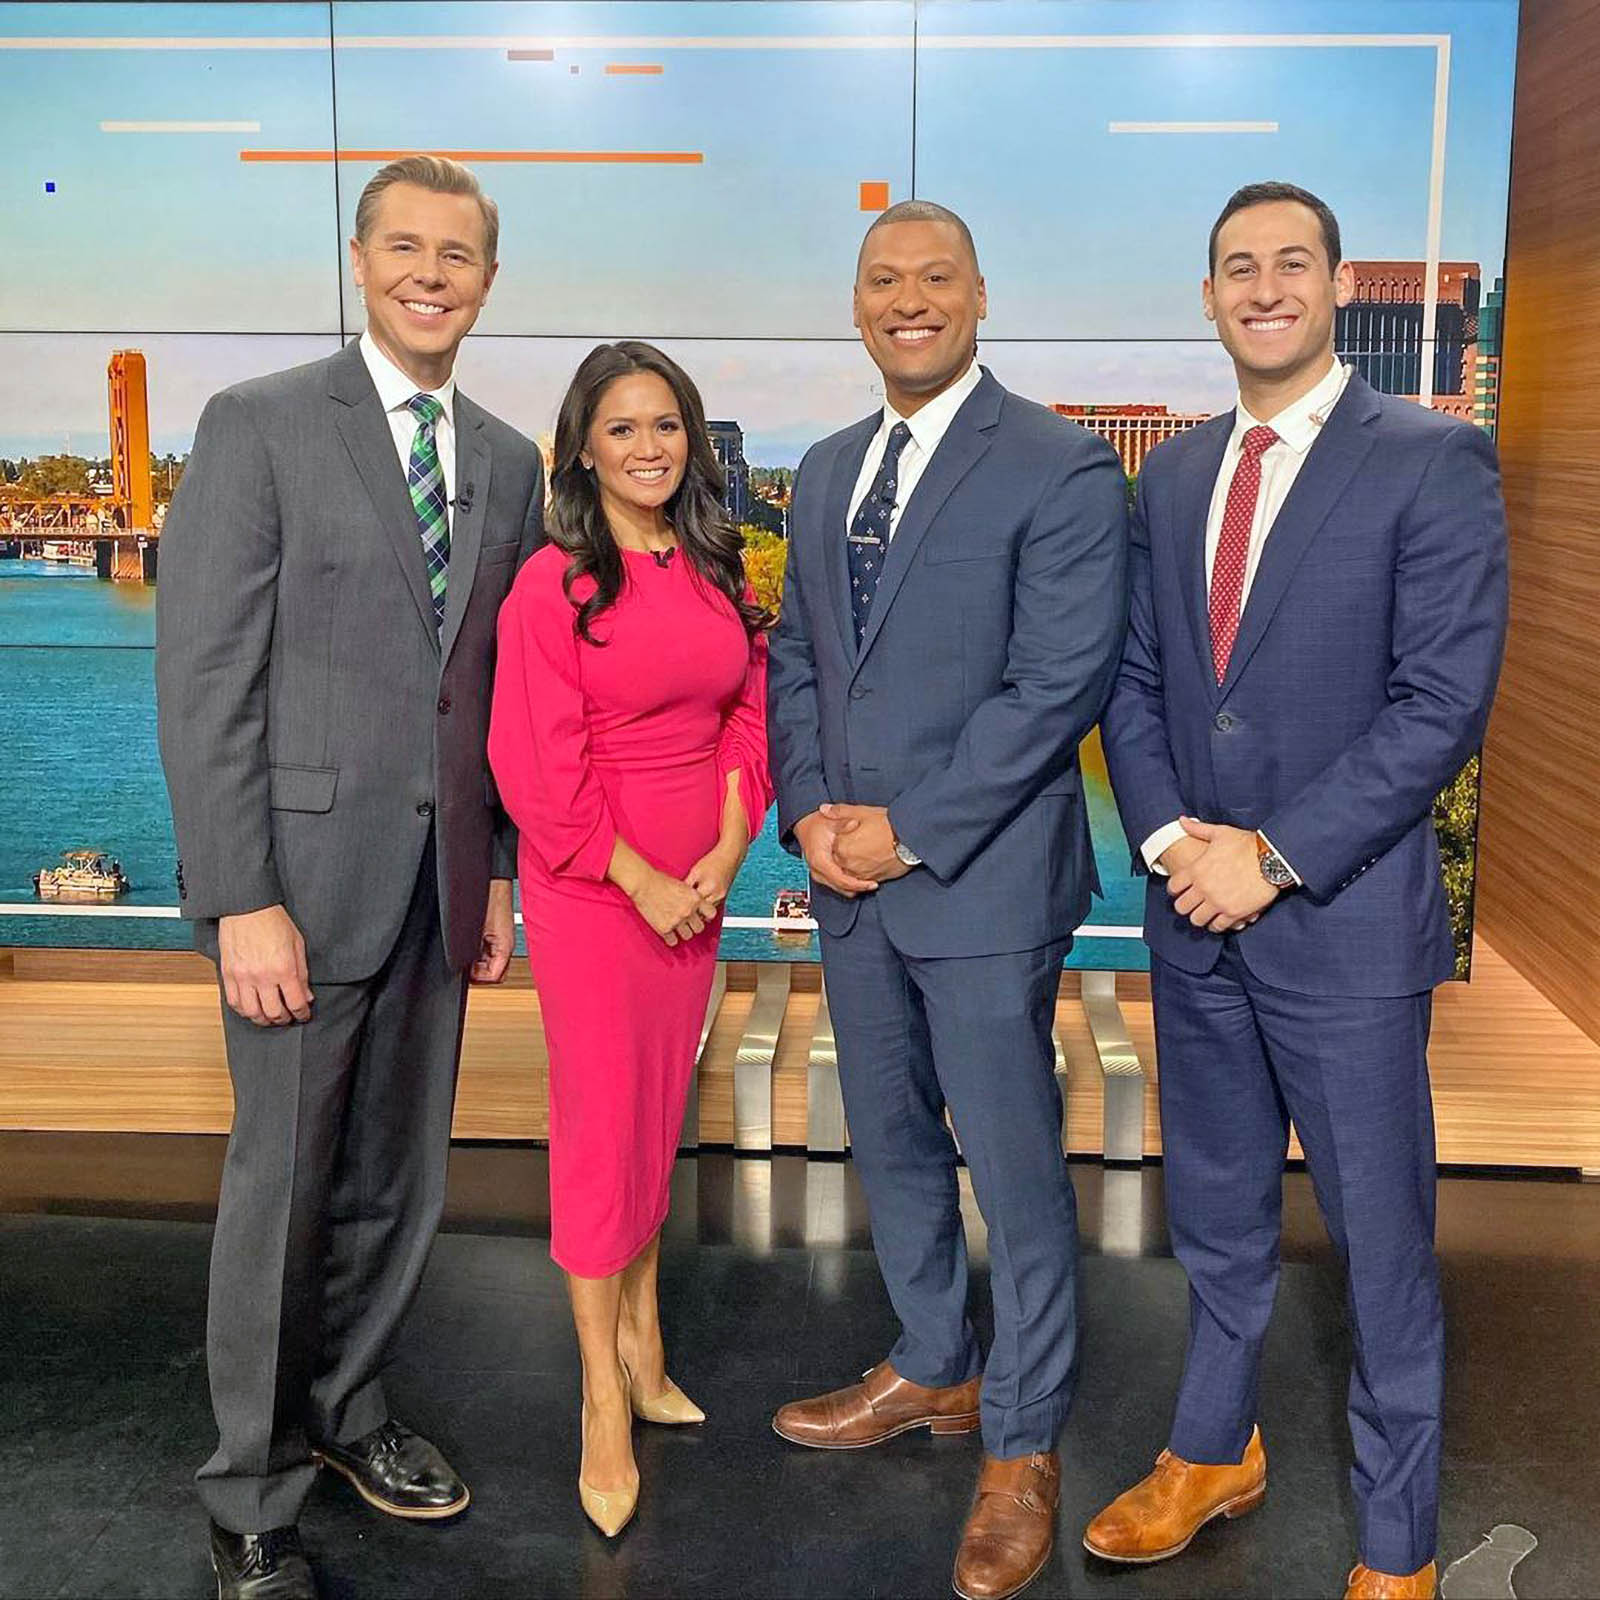 Richard Sharp, Mae Fesai, Pedro Rivera, and Adam Epstein at Studious of Fox 40 News Sacramento